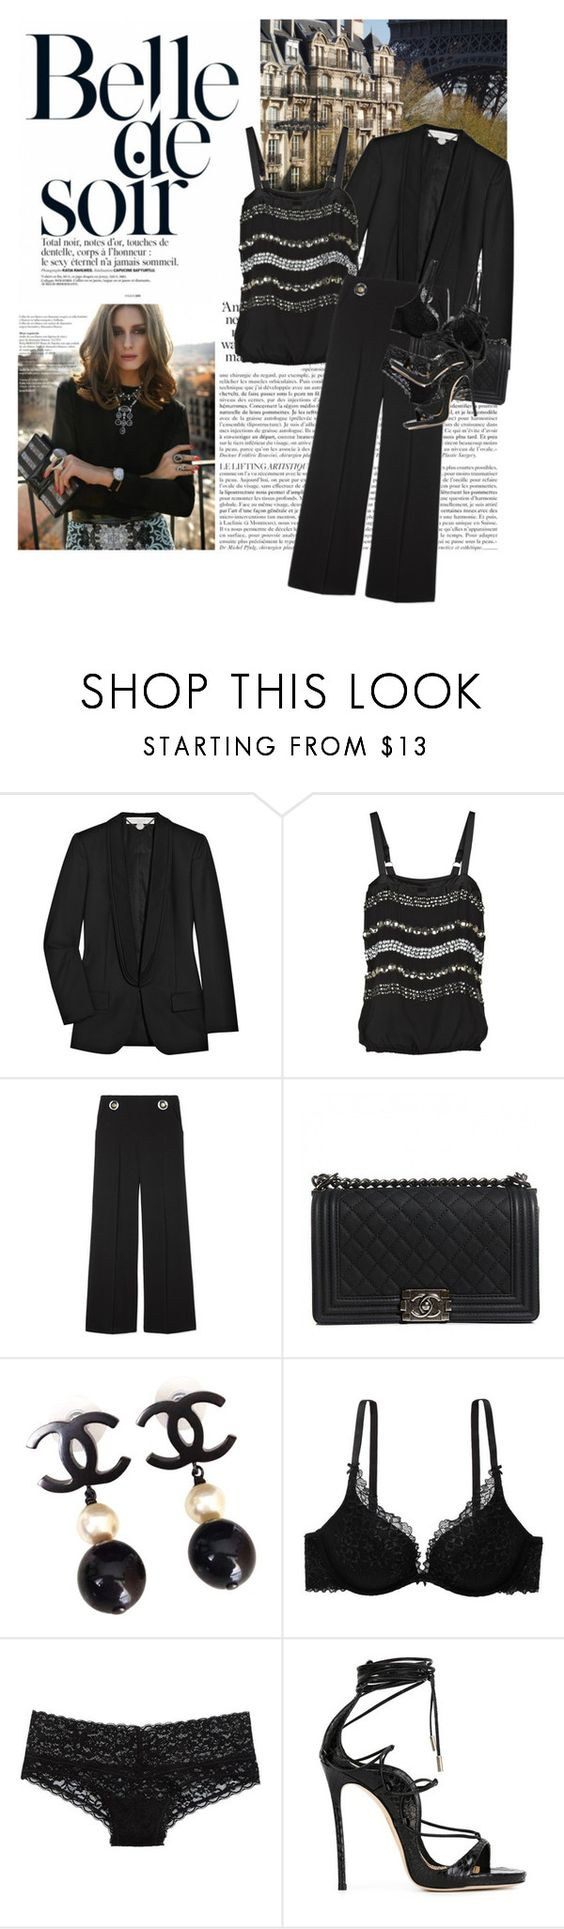 """Untitled #1746"" by hellohanna ❤ liked on Polyvore featuring STELLA McCARTNEY, By Malene Birger, Chanel, American Eagle Outfitters, Aerie, Dsquared2 and Yves Saint Laurent"